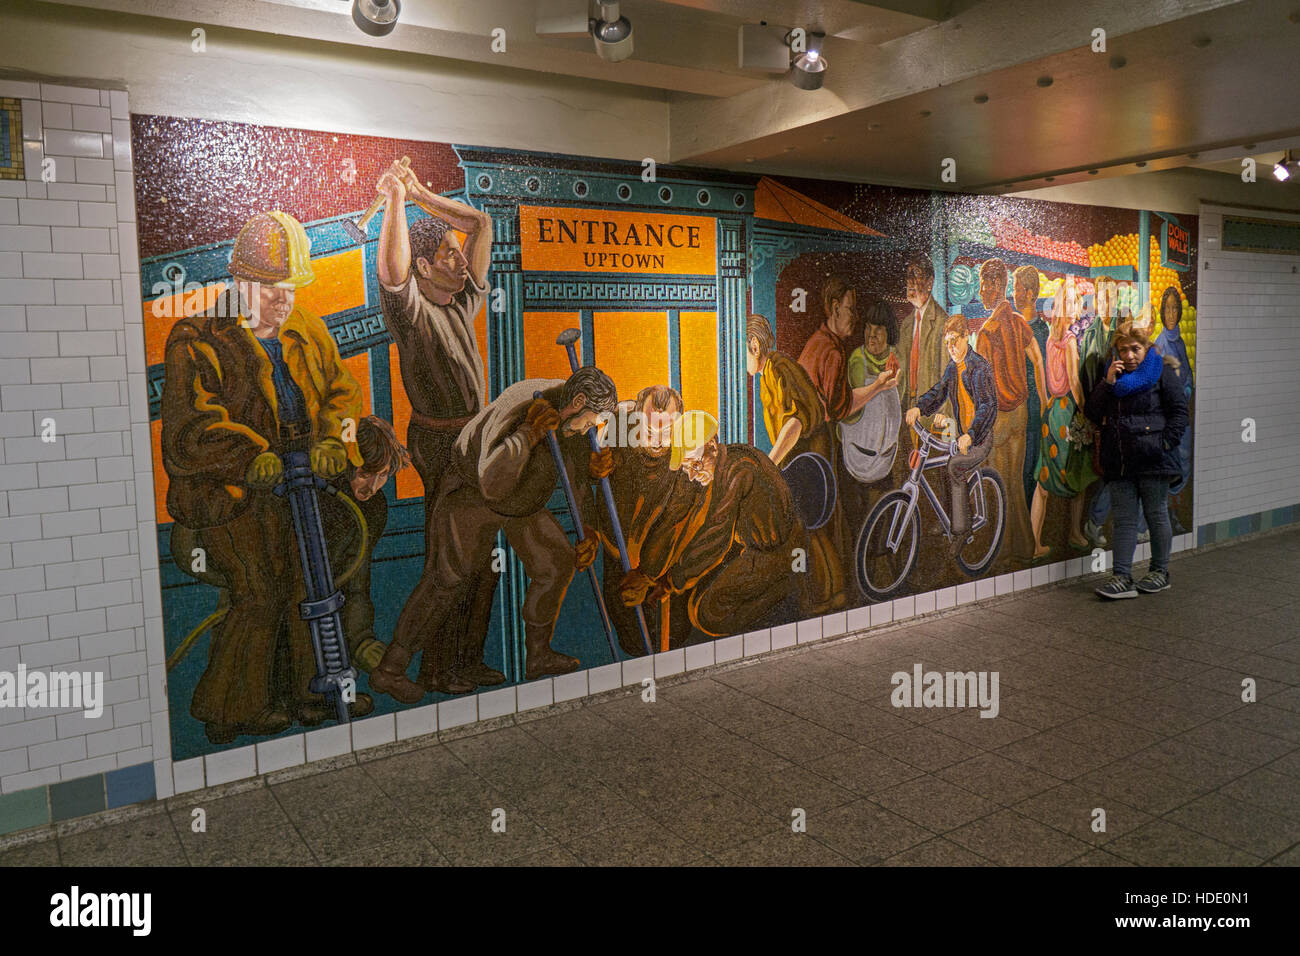 The Return of Spring/The Onset of Winter a mural by Jack Beal at the Times Square subway station in Midtown Manhattan, - Stock Image